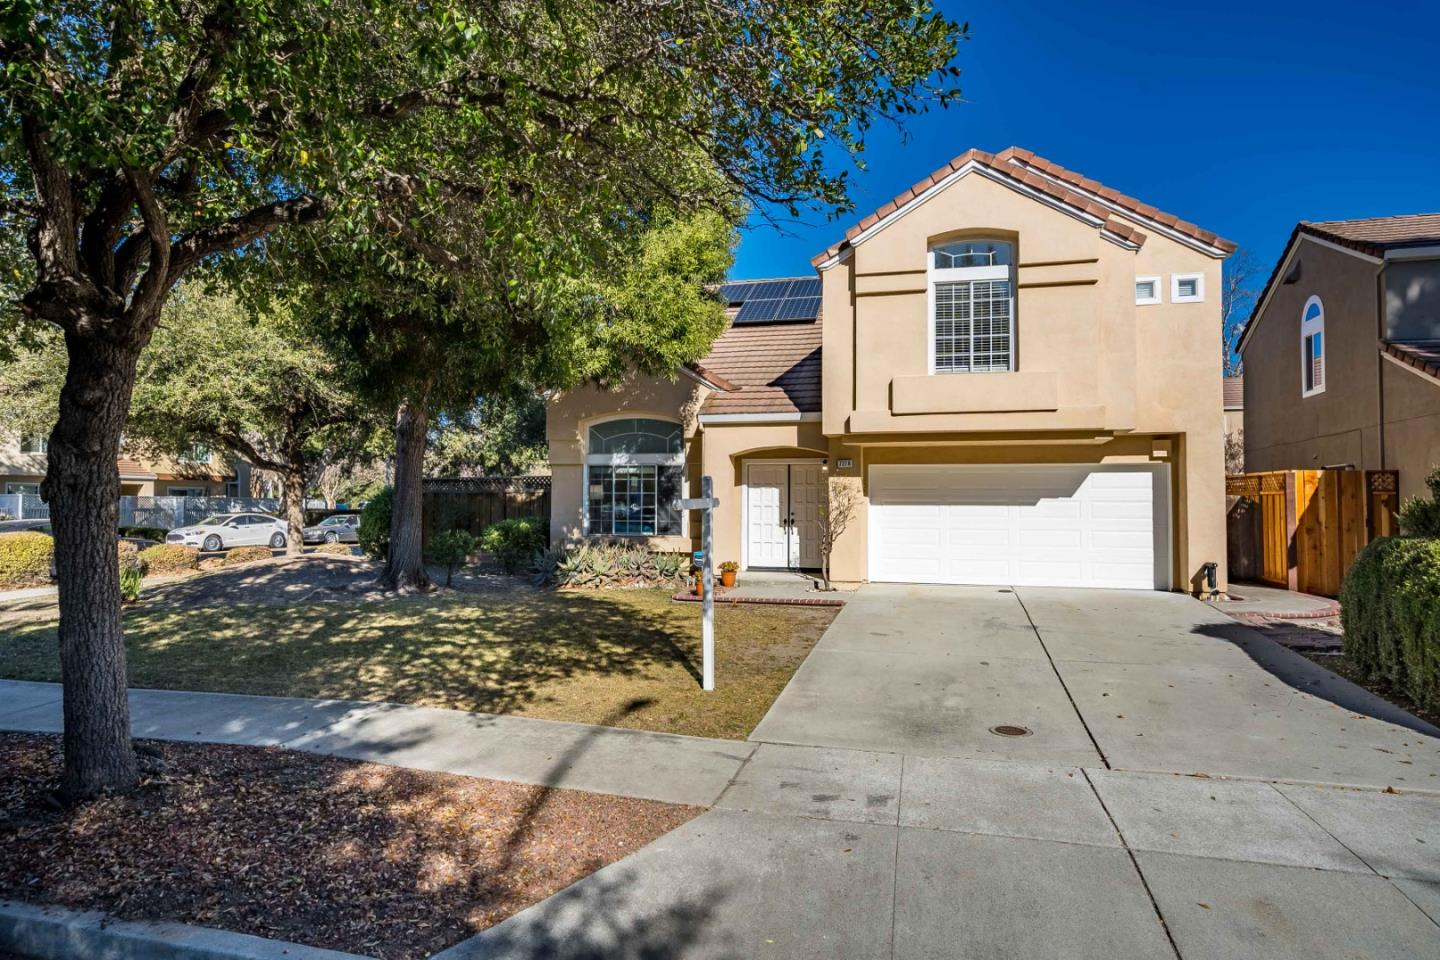 Photo of 7278 Urshan WAY, SAN JOSE, CA 95138